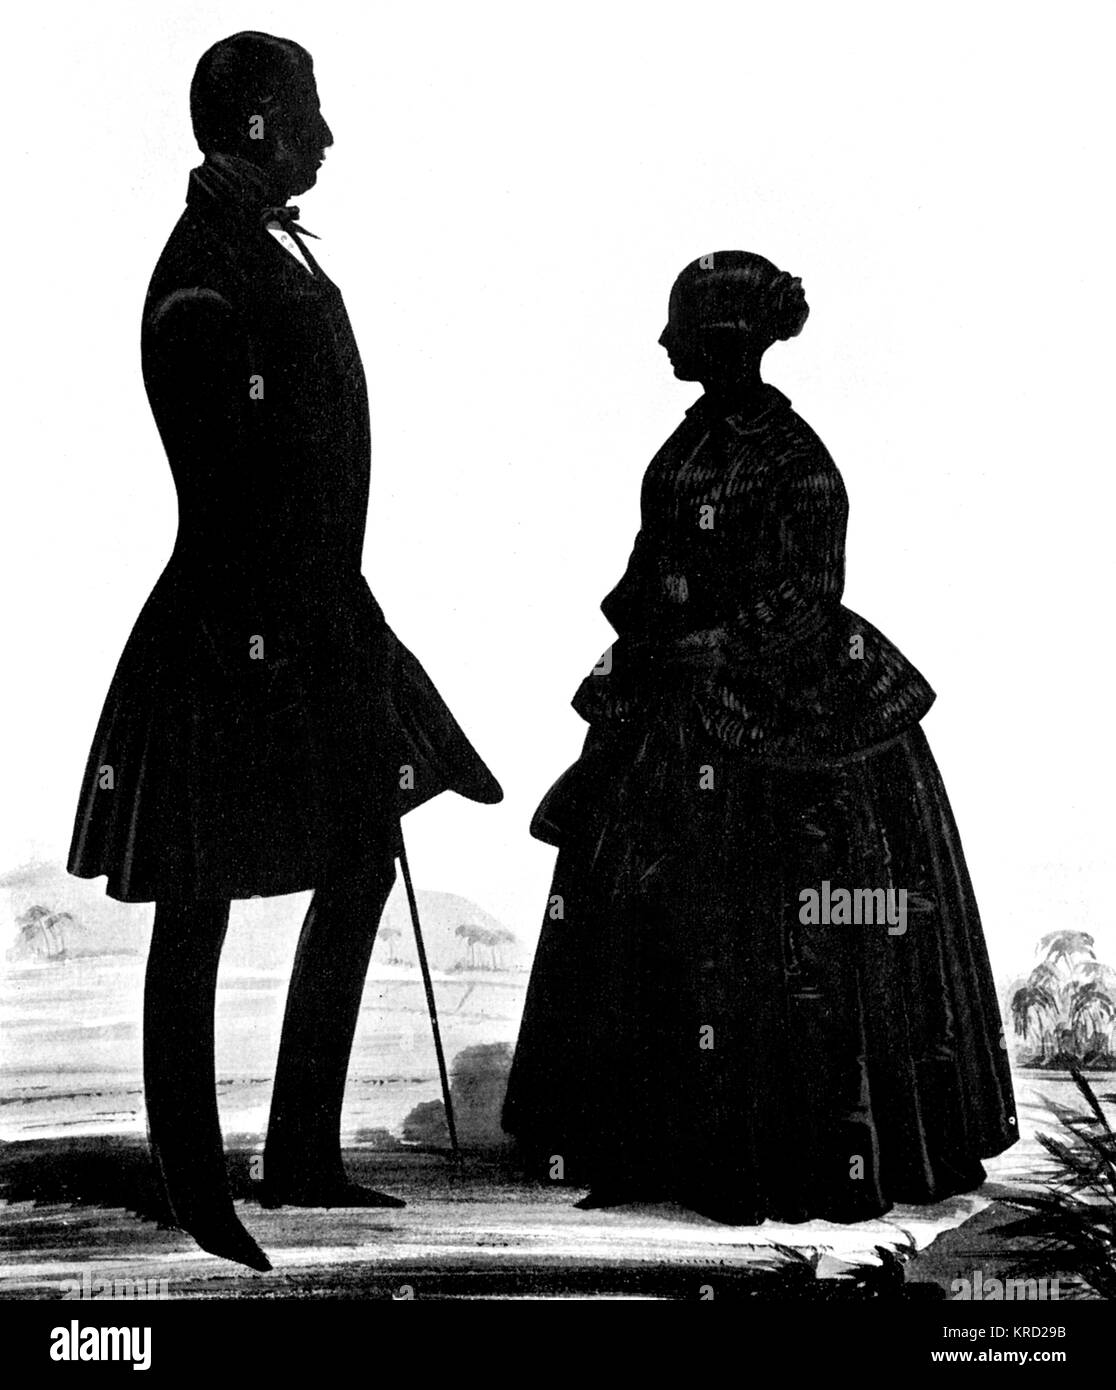 A silhouette portrait of Queen Victoria with her Prime Minister, Lord Melbourne, probably cut by Atkinson of Windsor - Stock Image